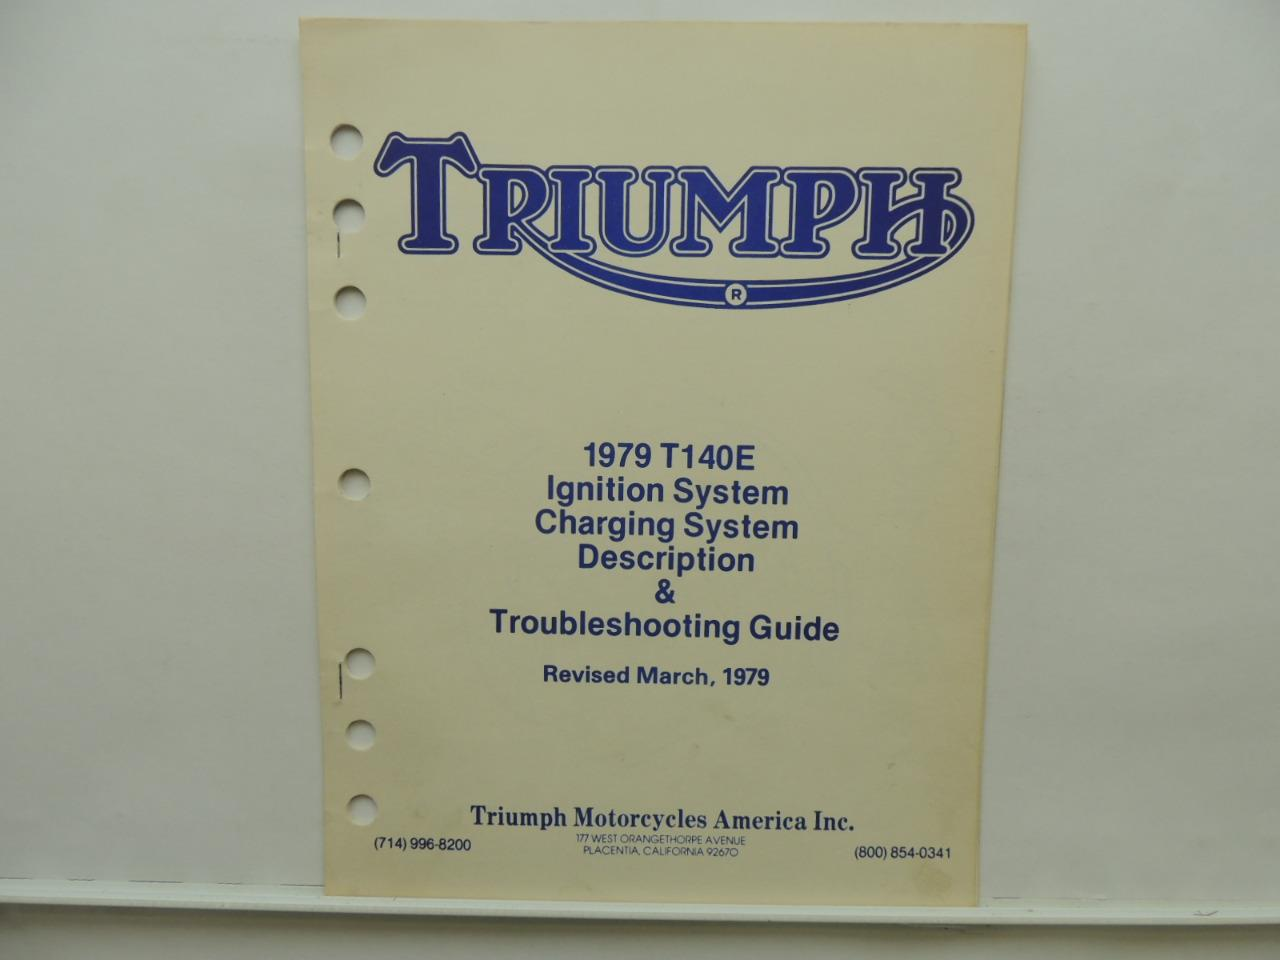 Wiring Diagram Triumph T100 Get Free Image About Wiring Diagram